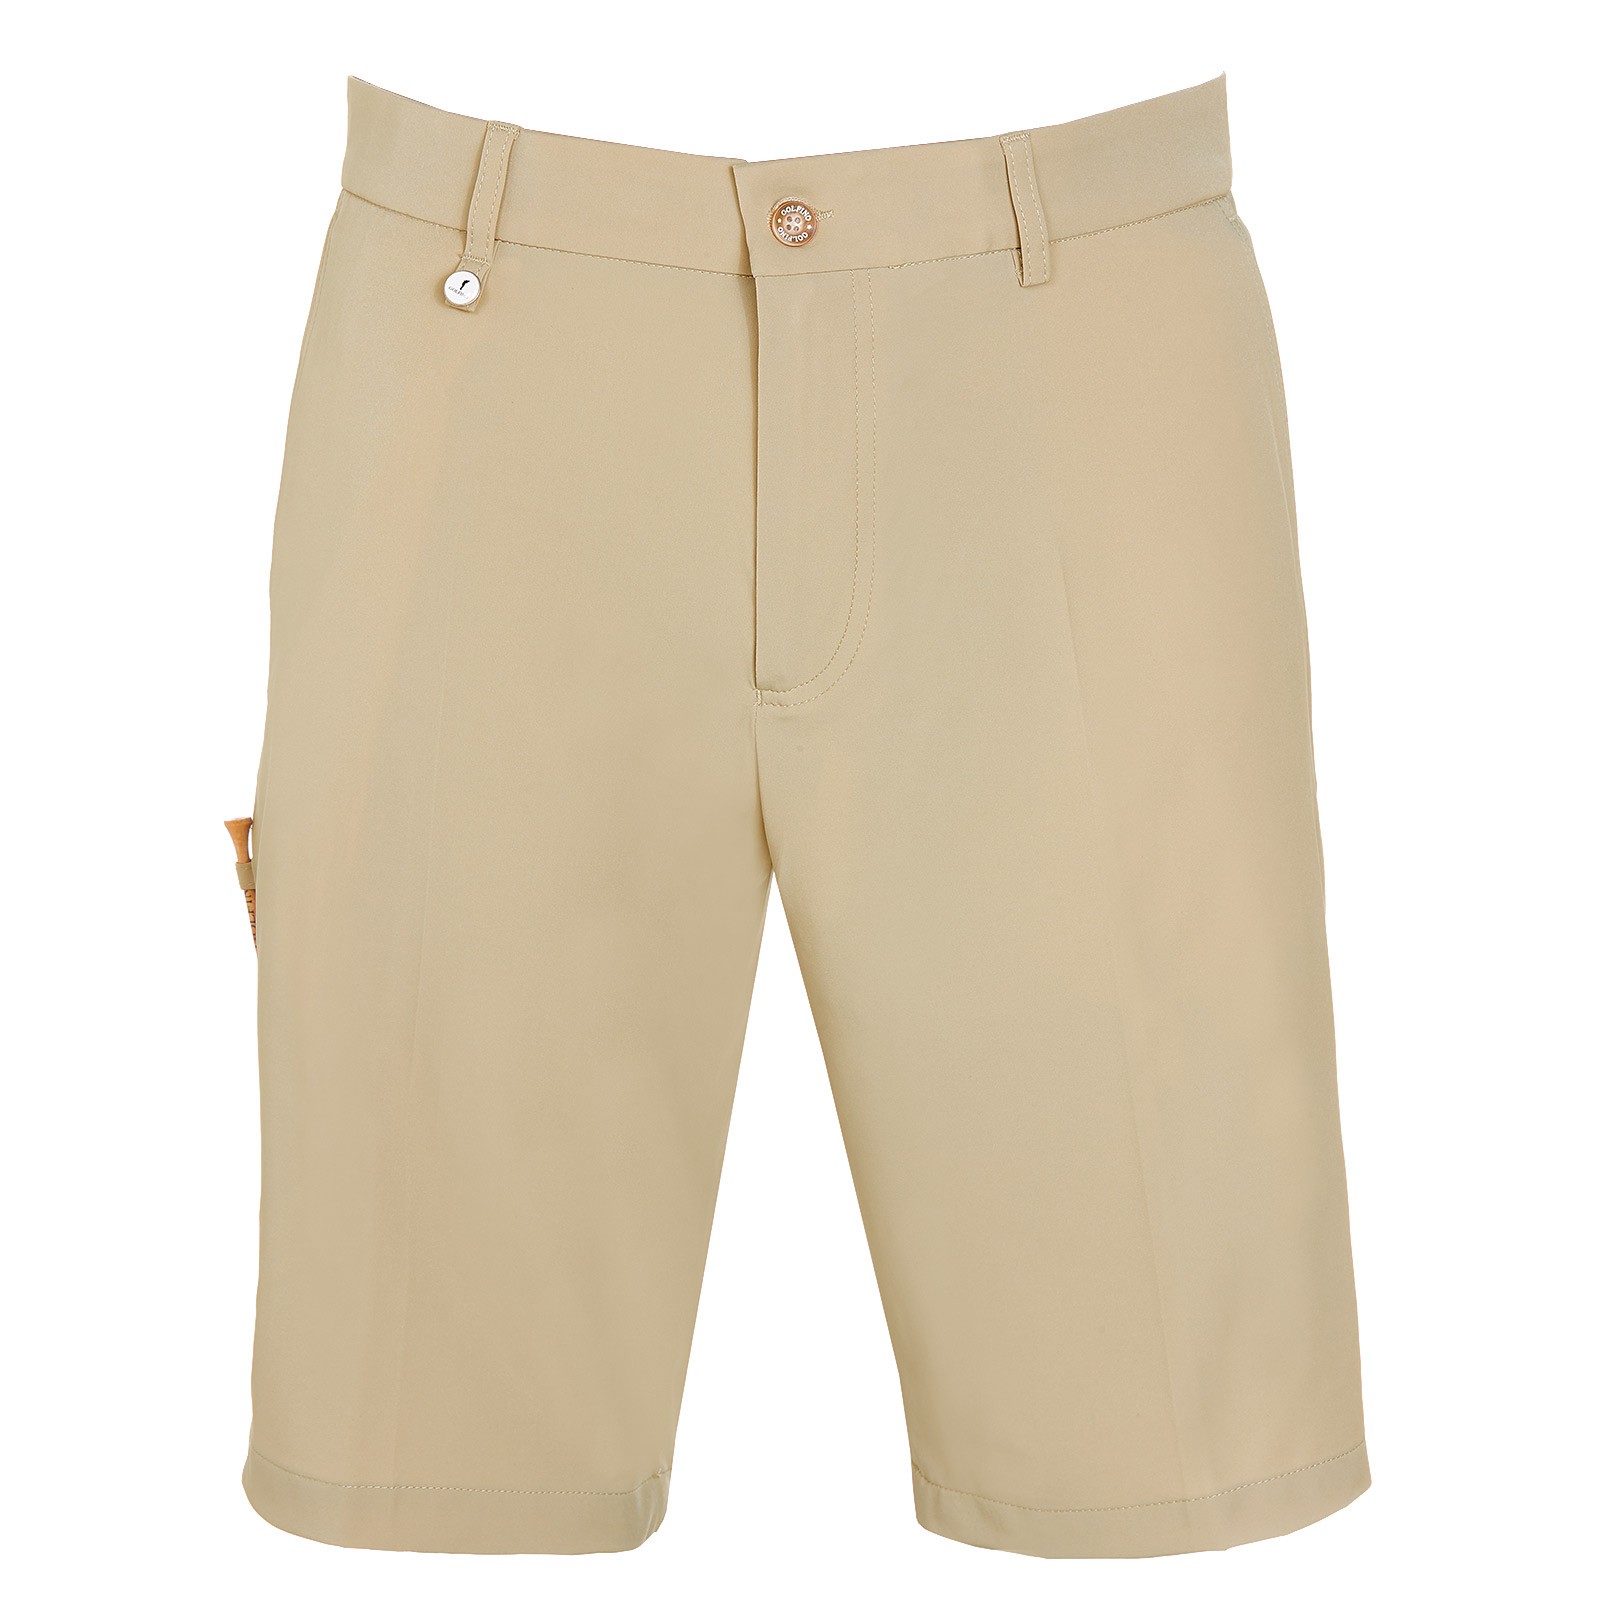 Herren Golfbermudas mit leichtem Stretch-Element